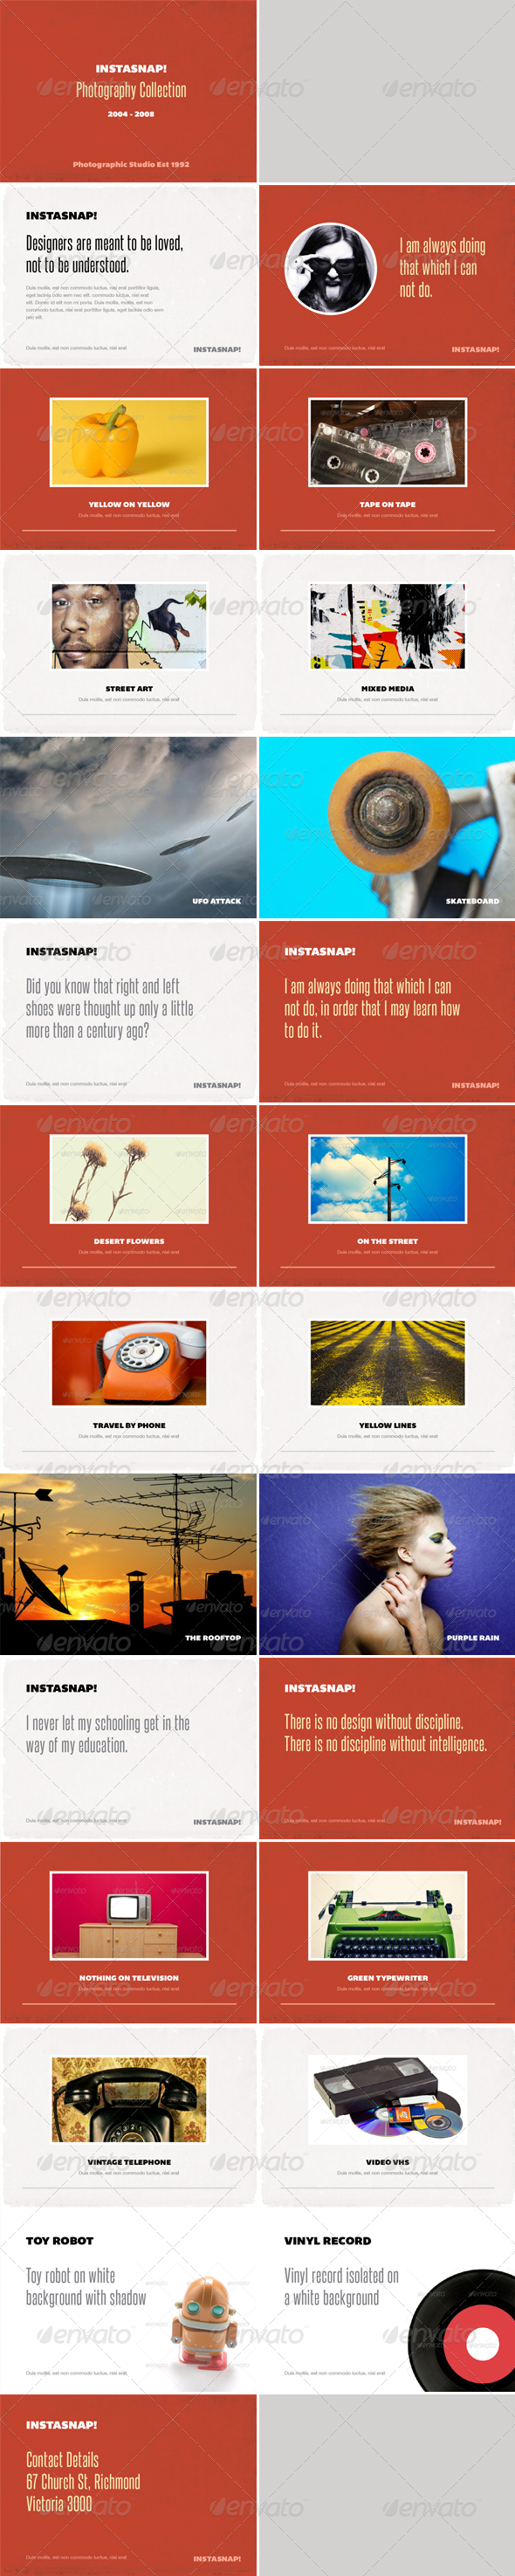 GraphicRiver Instasnap Photo Album or Folio Template 2493814